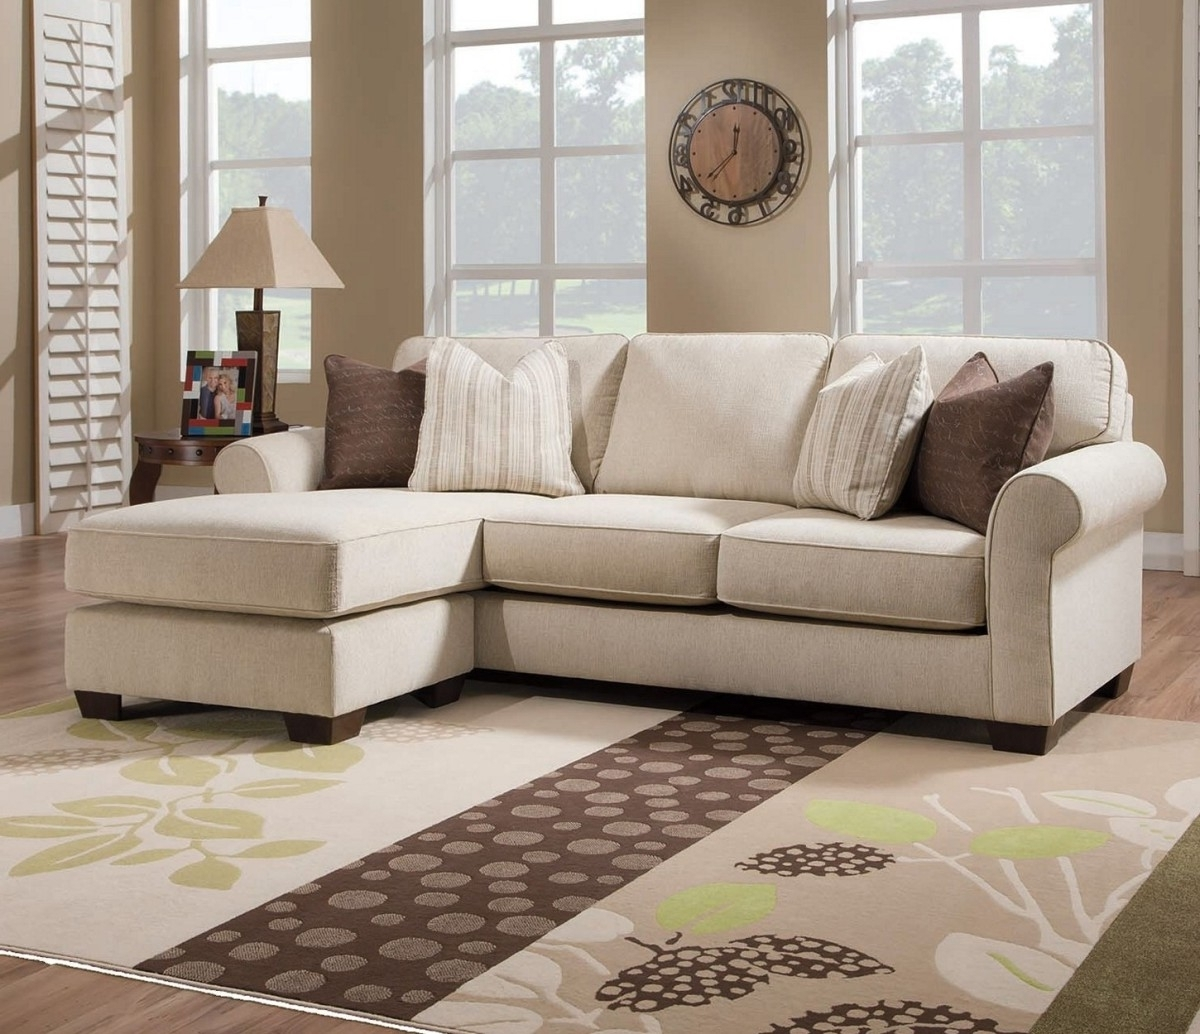 Lovely Sectional Sofa For Small Spaces 88 On Modern Sofa Ideas Inside Popular Modern Sectional Sofas For Small Spaces (View 18 of 20)